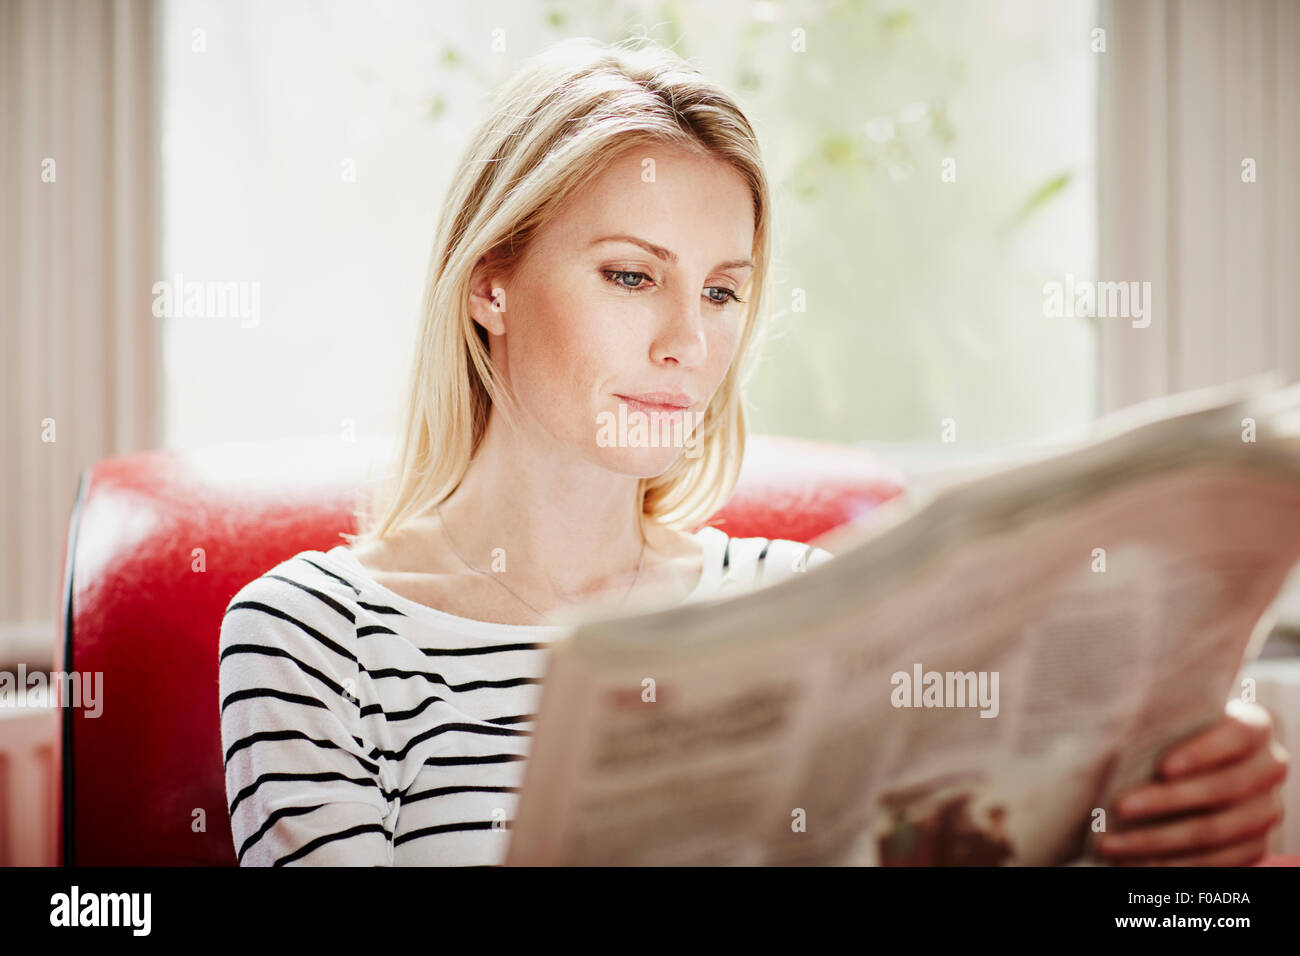 Mid adult woman reading newspaper Photo Stock